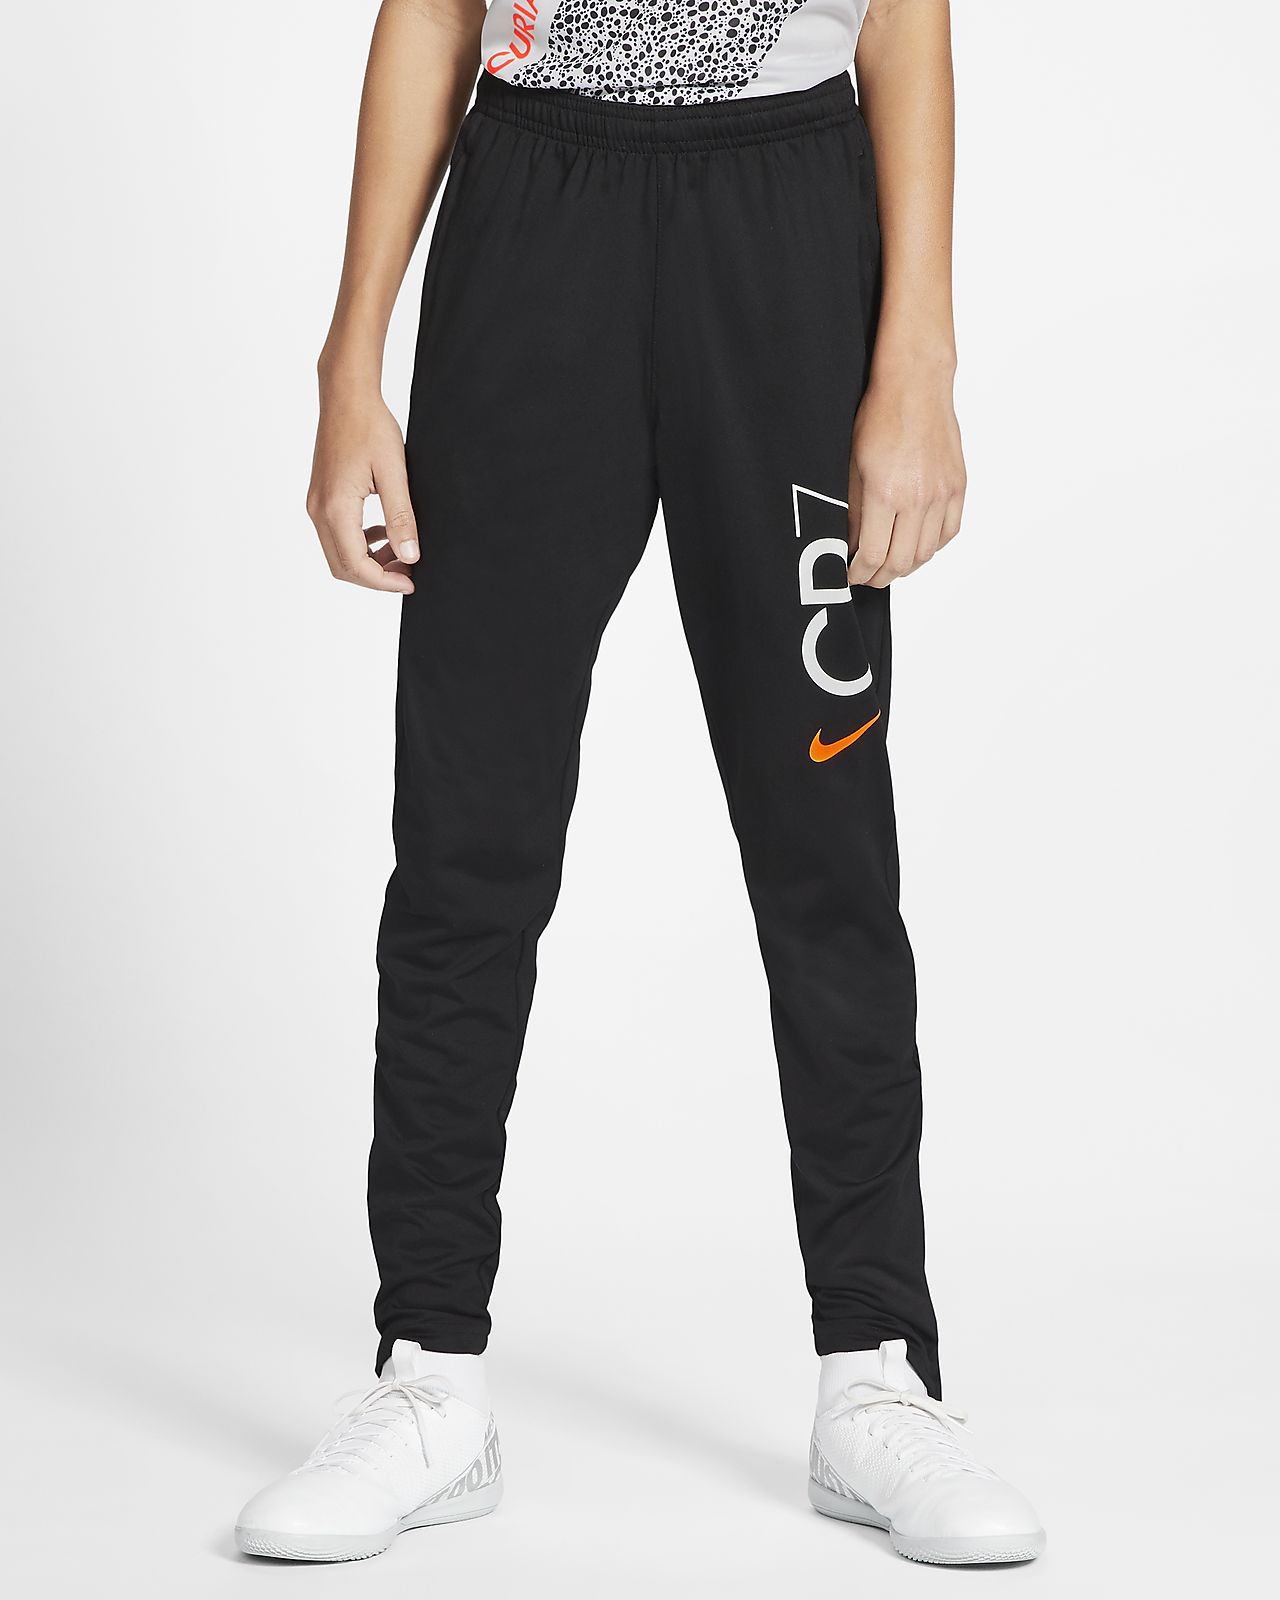 Pantalon de football Nike Dri FIT CR7 pour Enfant plus âgé